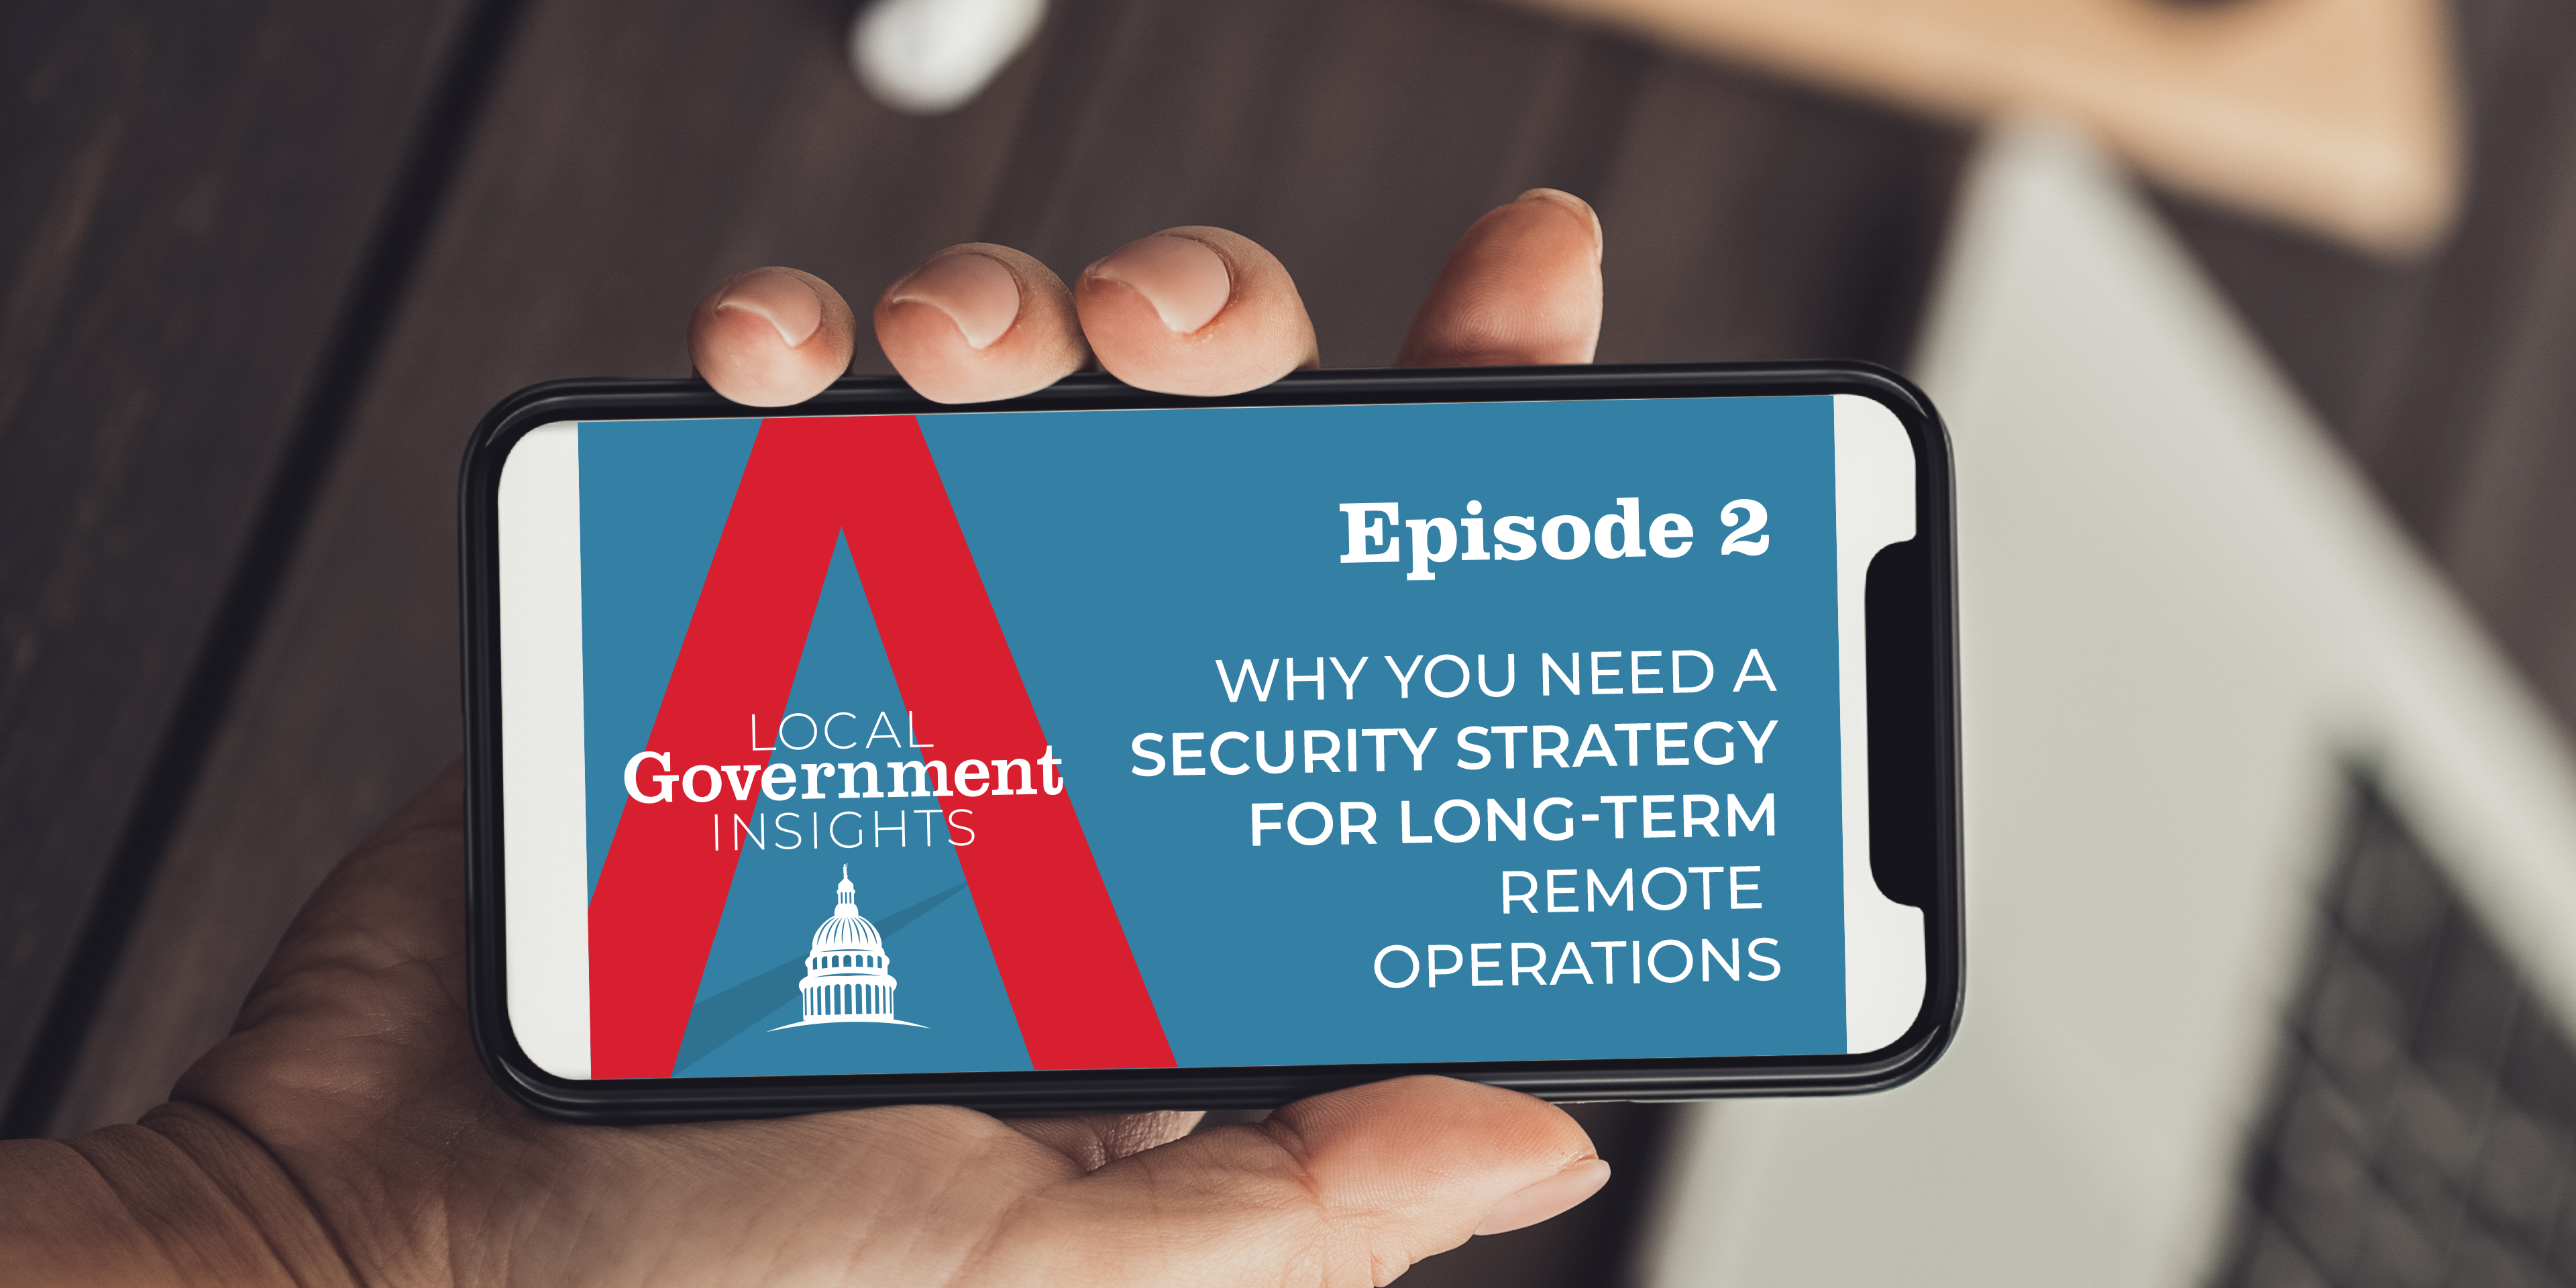 Why You Need a Security Strategy for Long-Term Remote Operations